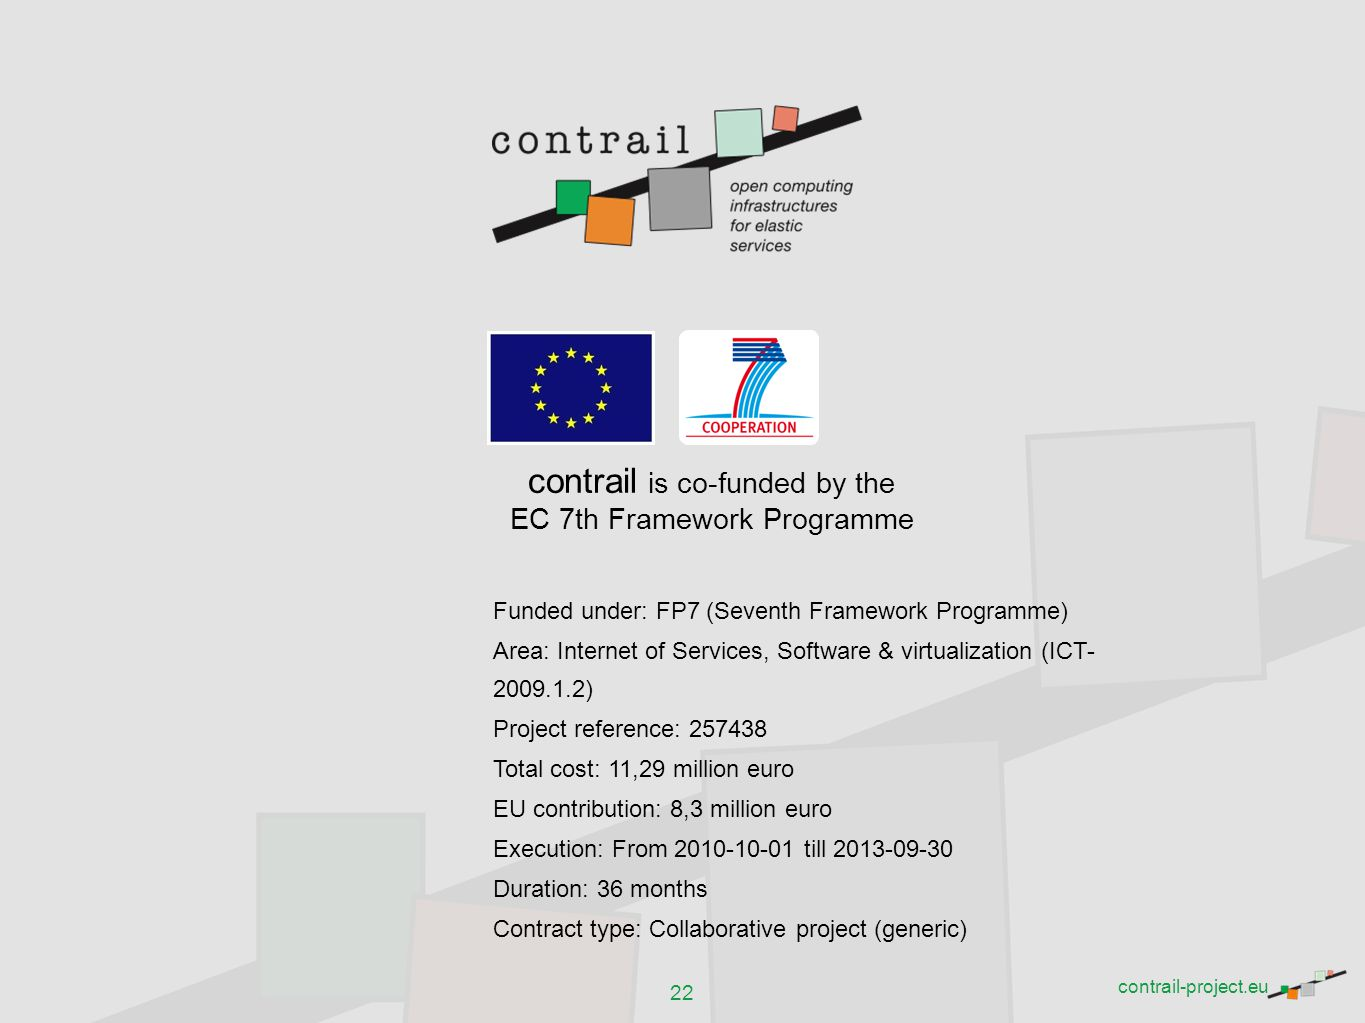 contrail is co-funded by the